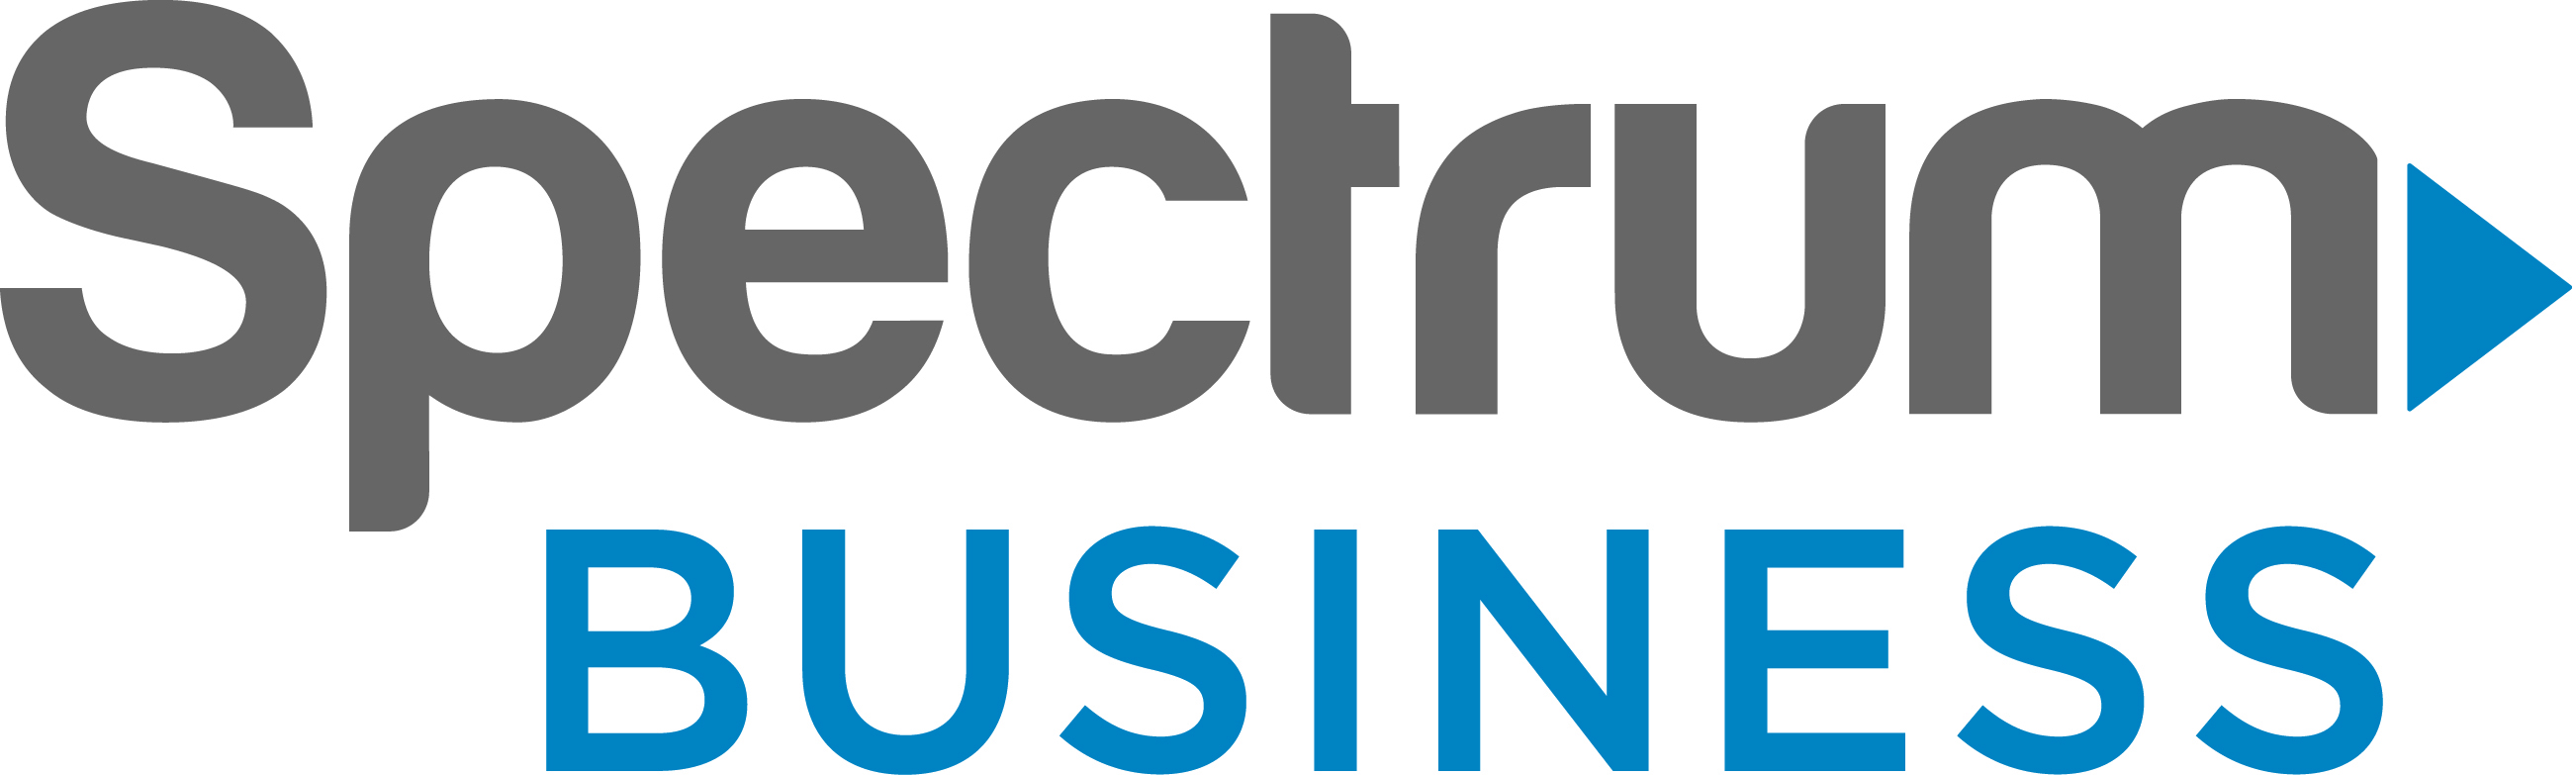 Spectrum Business Internet, Phone, Television